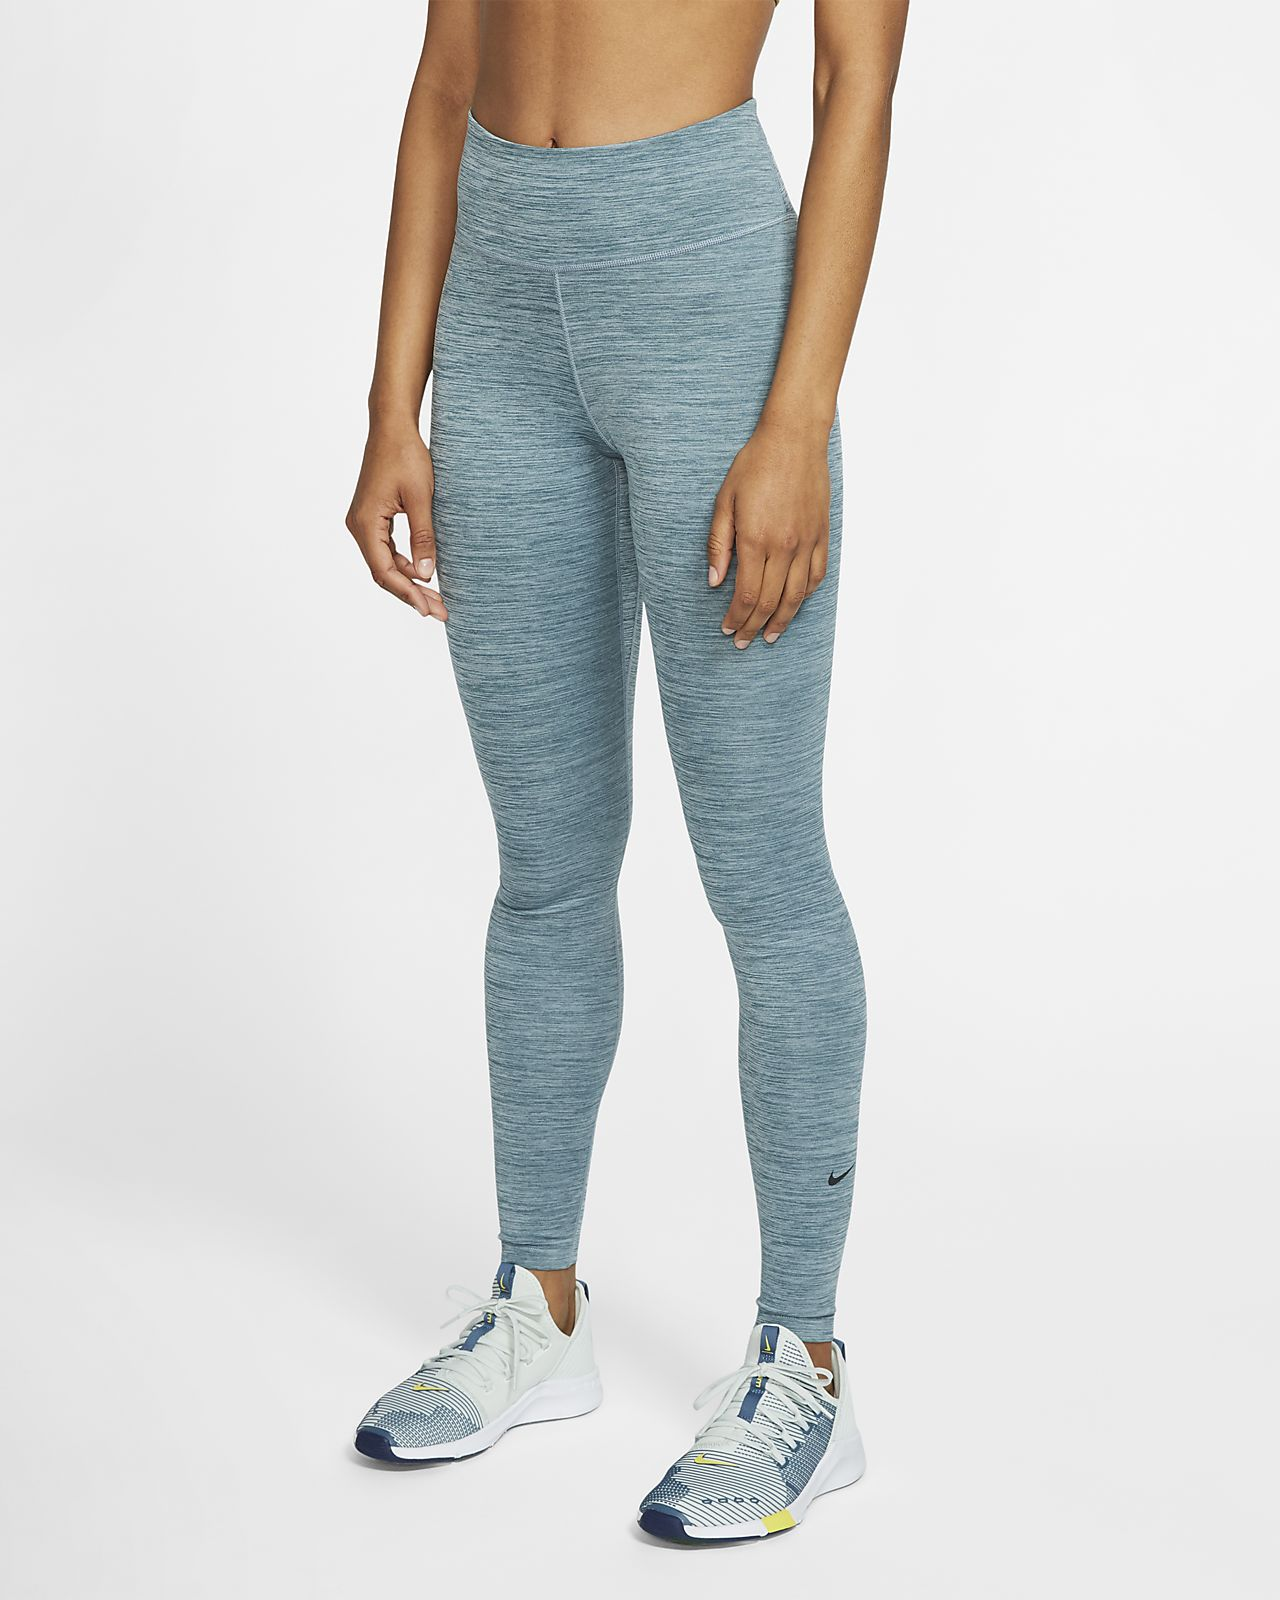 Tights Nike One para mulher